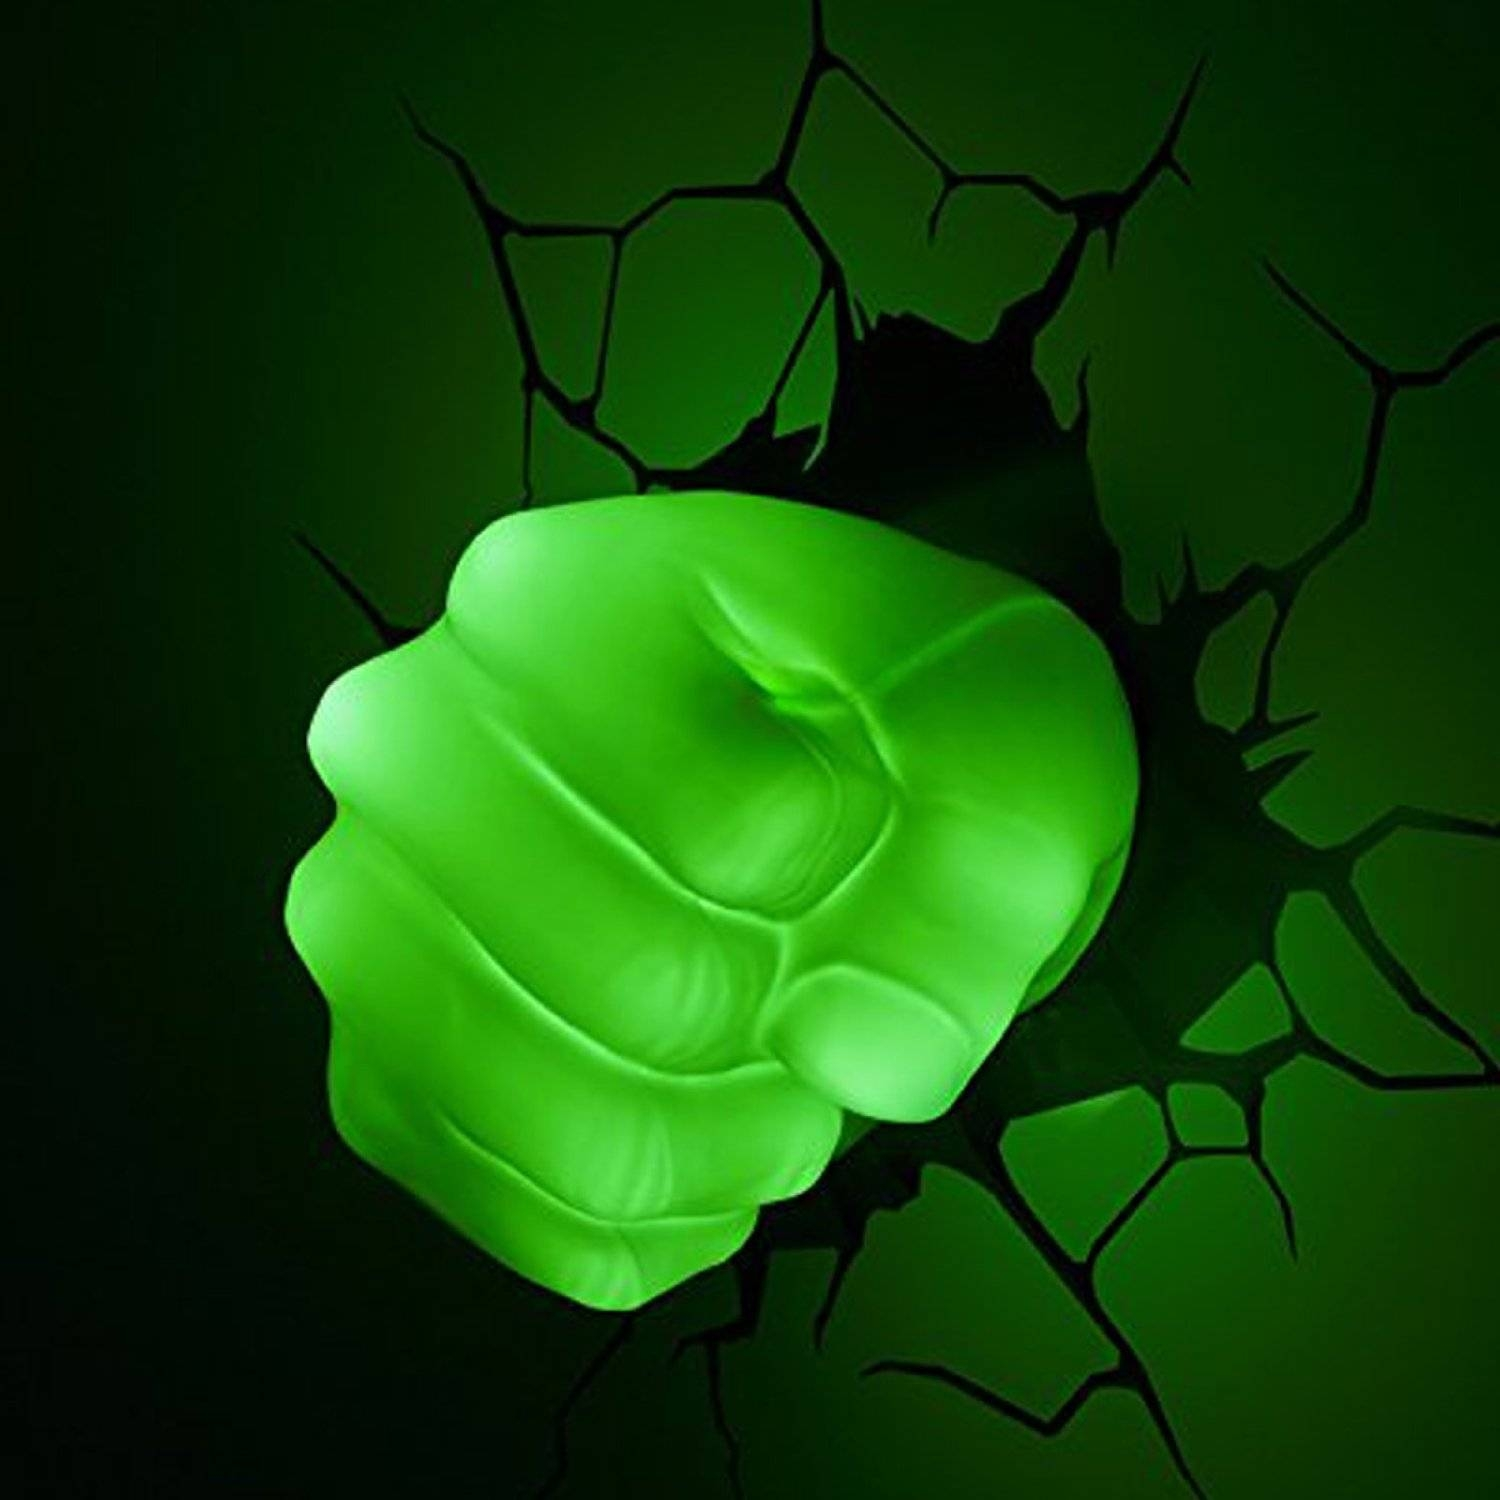 The Avengers 3d Wall Art Nightlight – Hulk Hand | This Stuff Online With Regard To Newest Avengers 3d Wall Art (View 5 of 20)